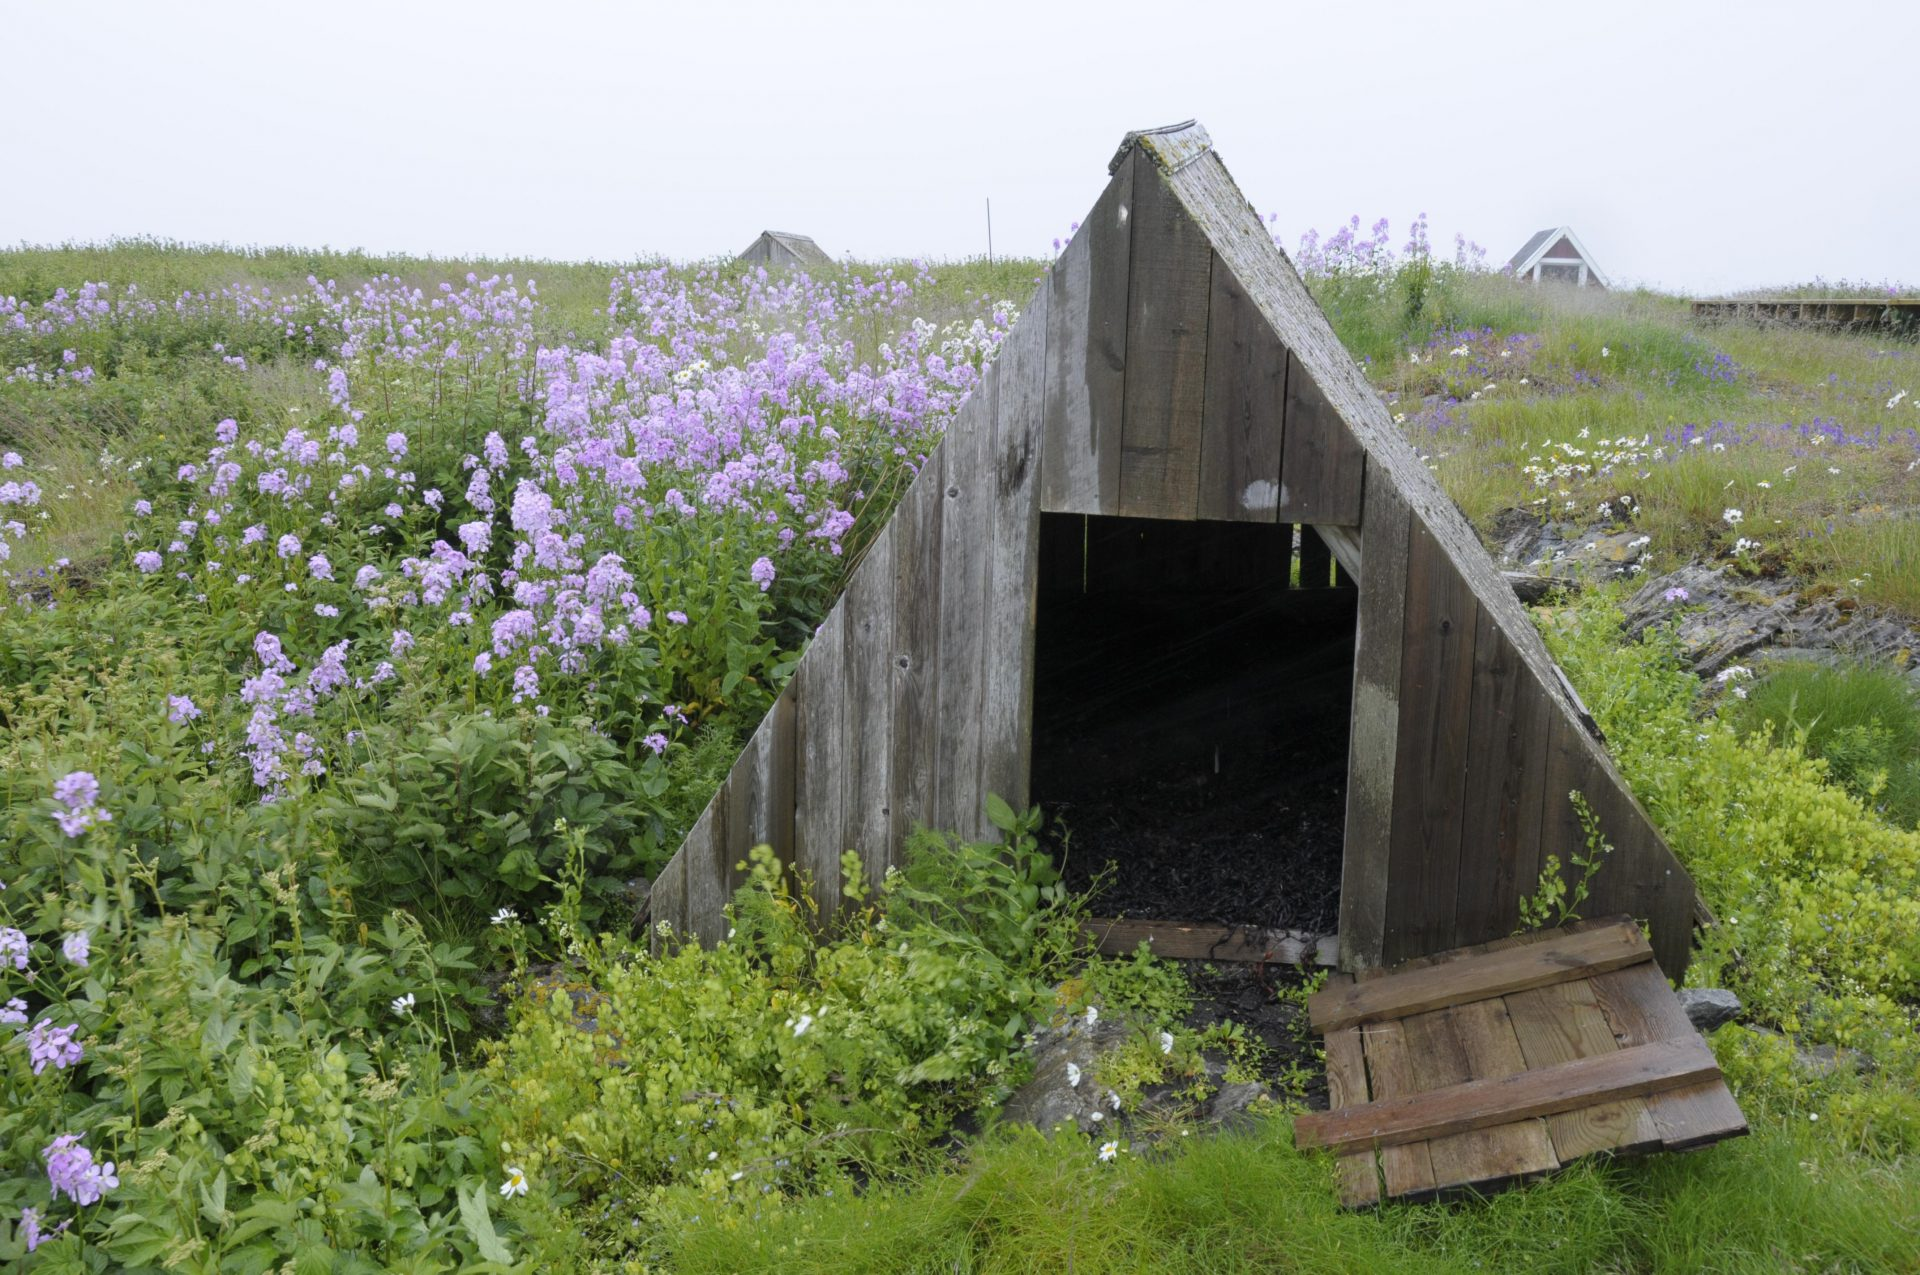 Picture of a Eider duck house on Vega. The eider duck houses are cleaned, and the seaweed replaced every year. A value creation project entitled 'The valuable coastal culture in Nordland' (Den verdifulle kystkulturen i Nordland) has helped carry the knowledge of eider husbandry forward, and to ensure that eiderdown products can still be found on the market. Photo by Marit Bendz, the Directorate for Cultural Heritage